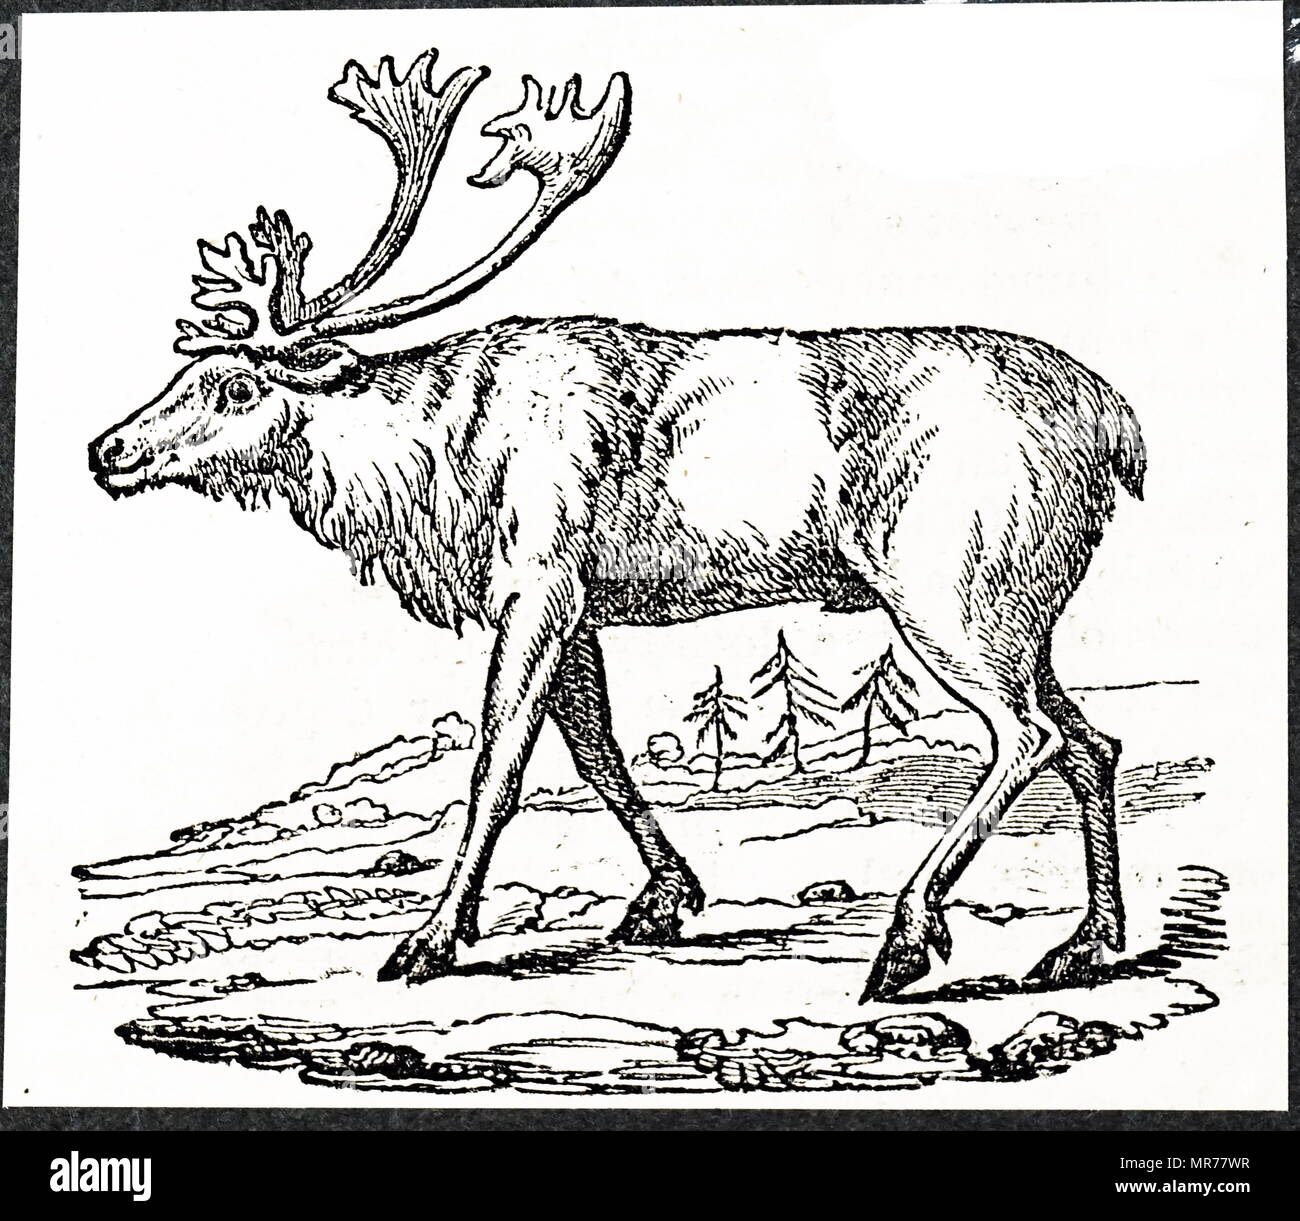 Woodcut engraving depicting a reindeer. Dated 19th century - Stock Image